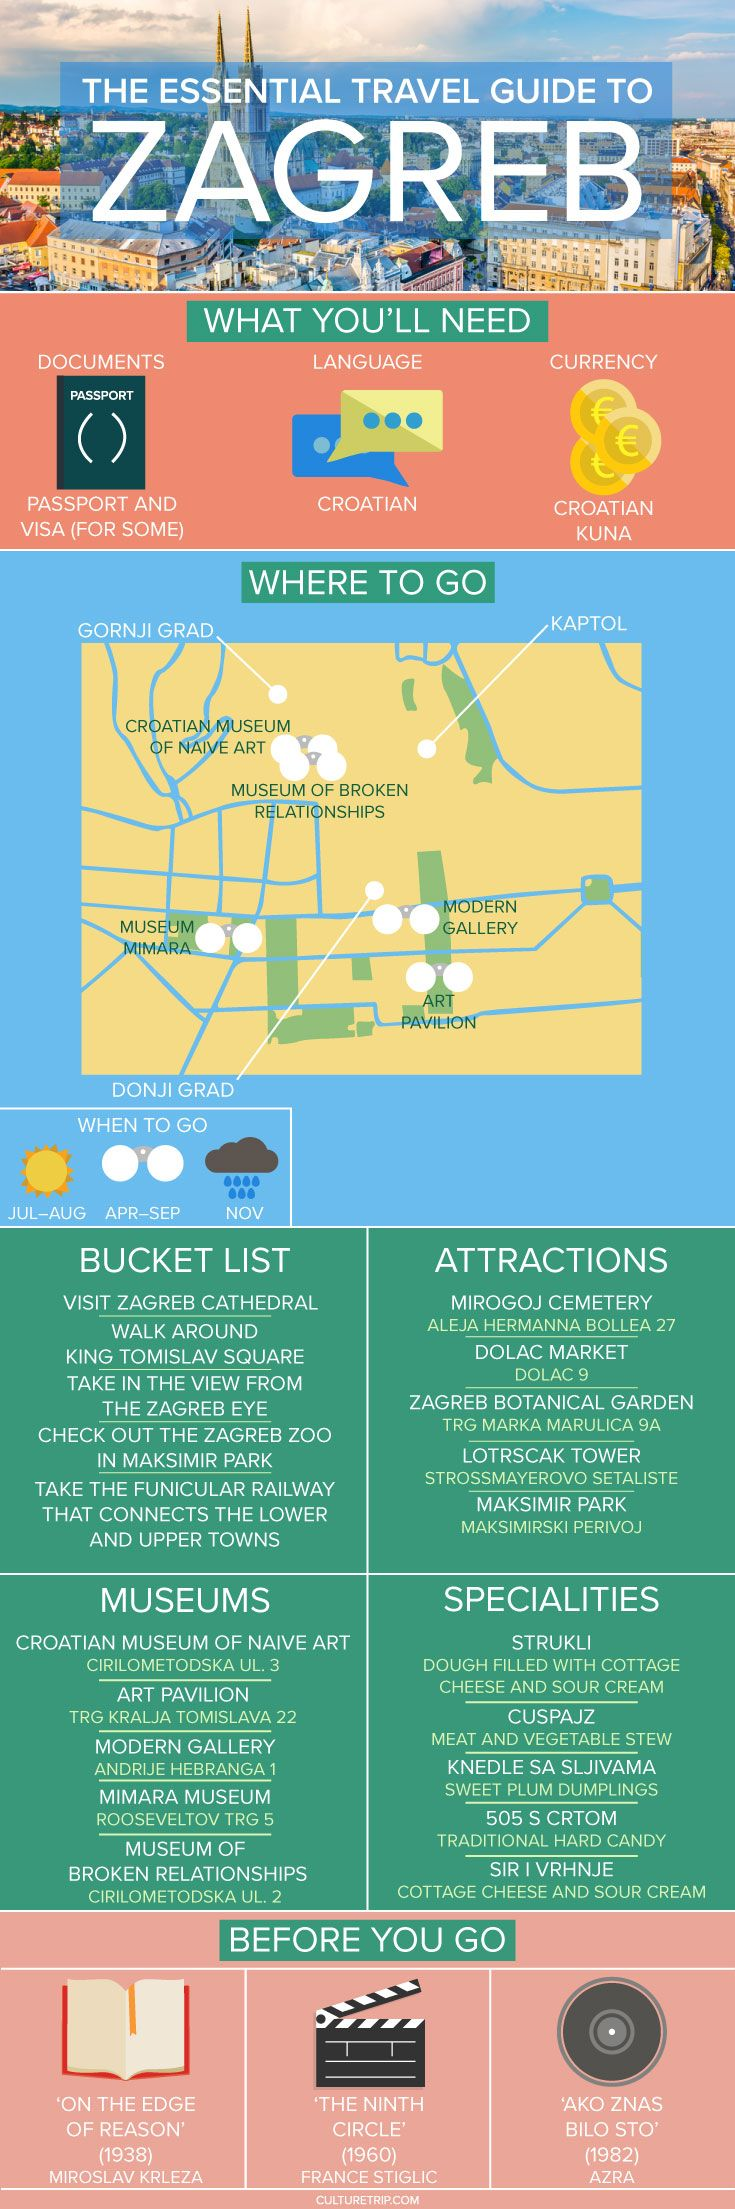 The Essential Travel Guide To Zagreb Infographic Travel Essentials Travel Guide Design Travel Destinations European